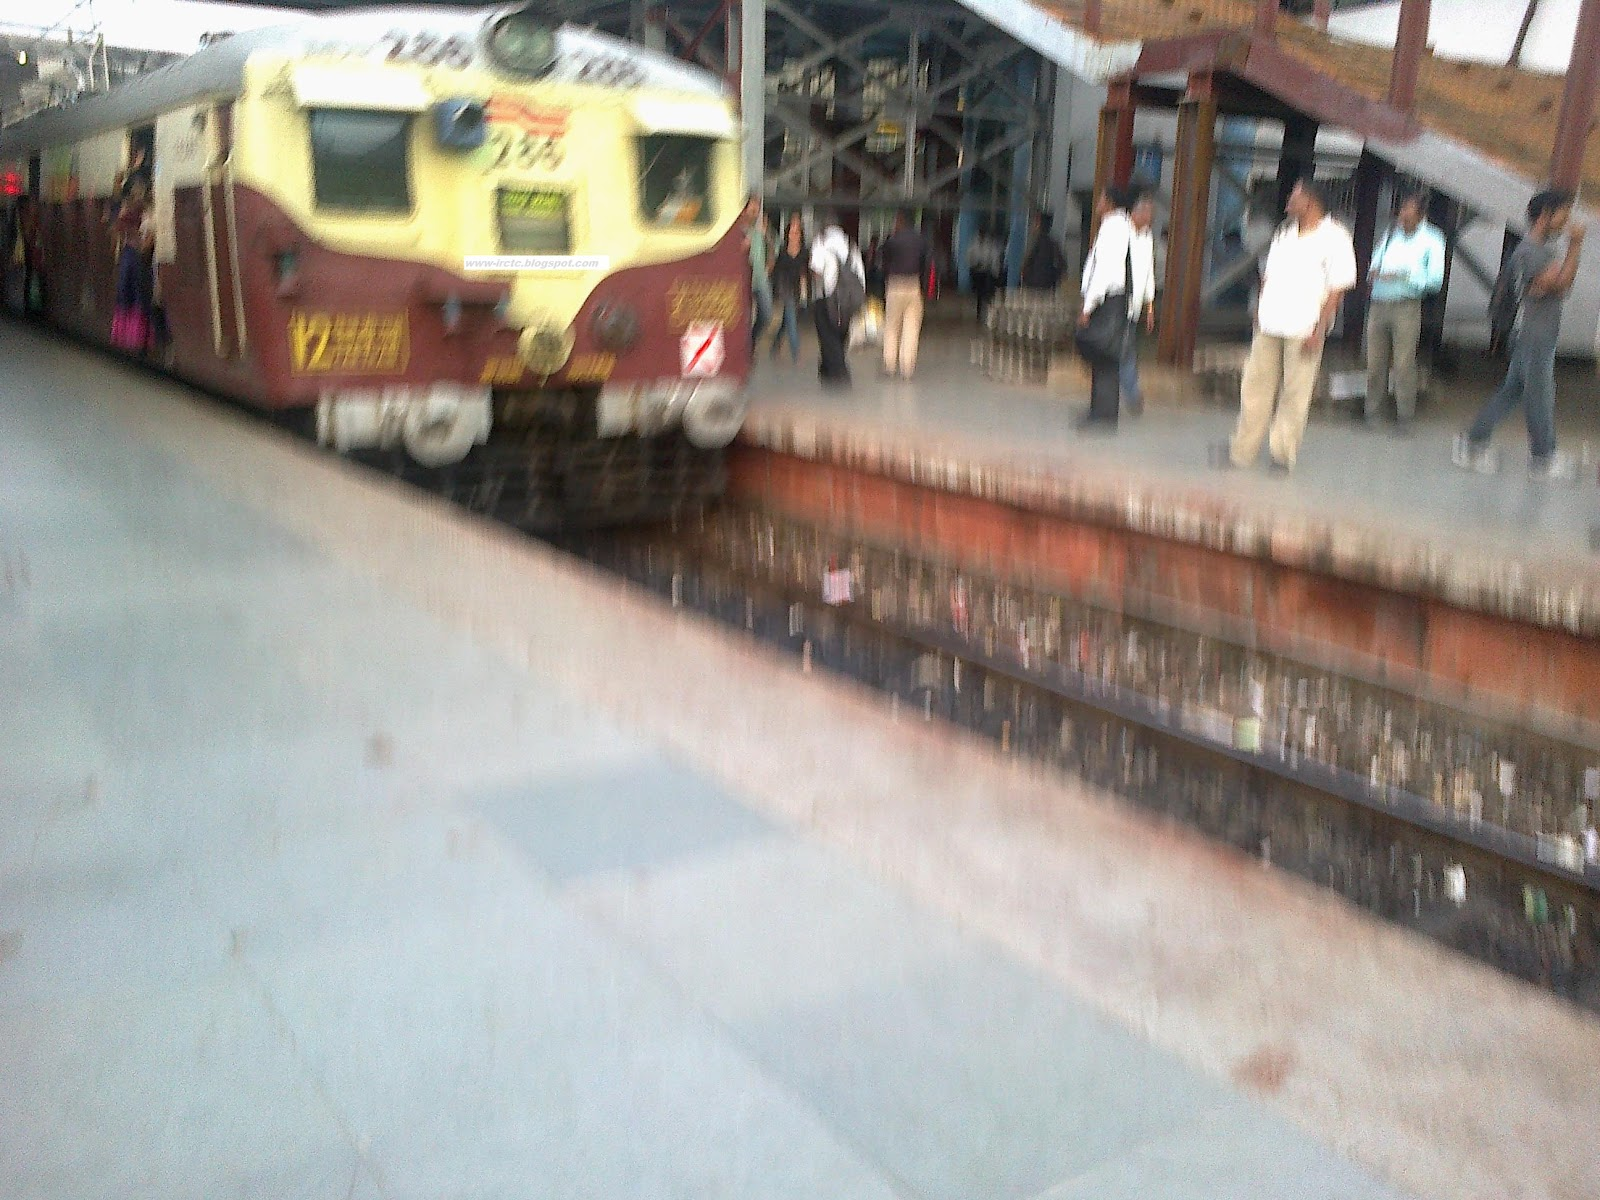 08-08-2014 :: Special Night Block by Western Railway